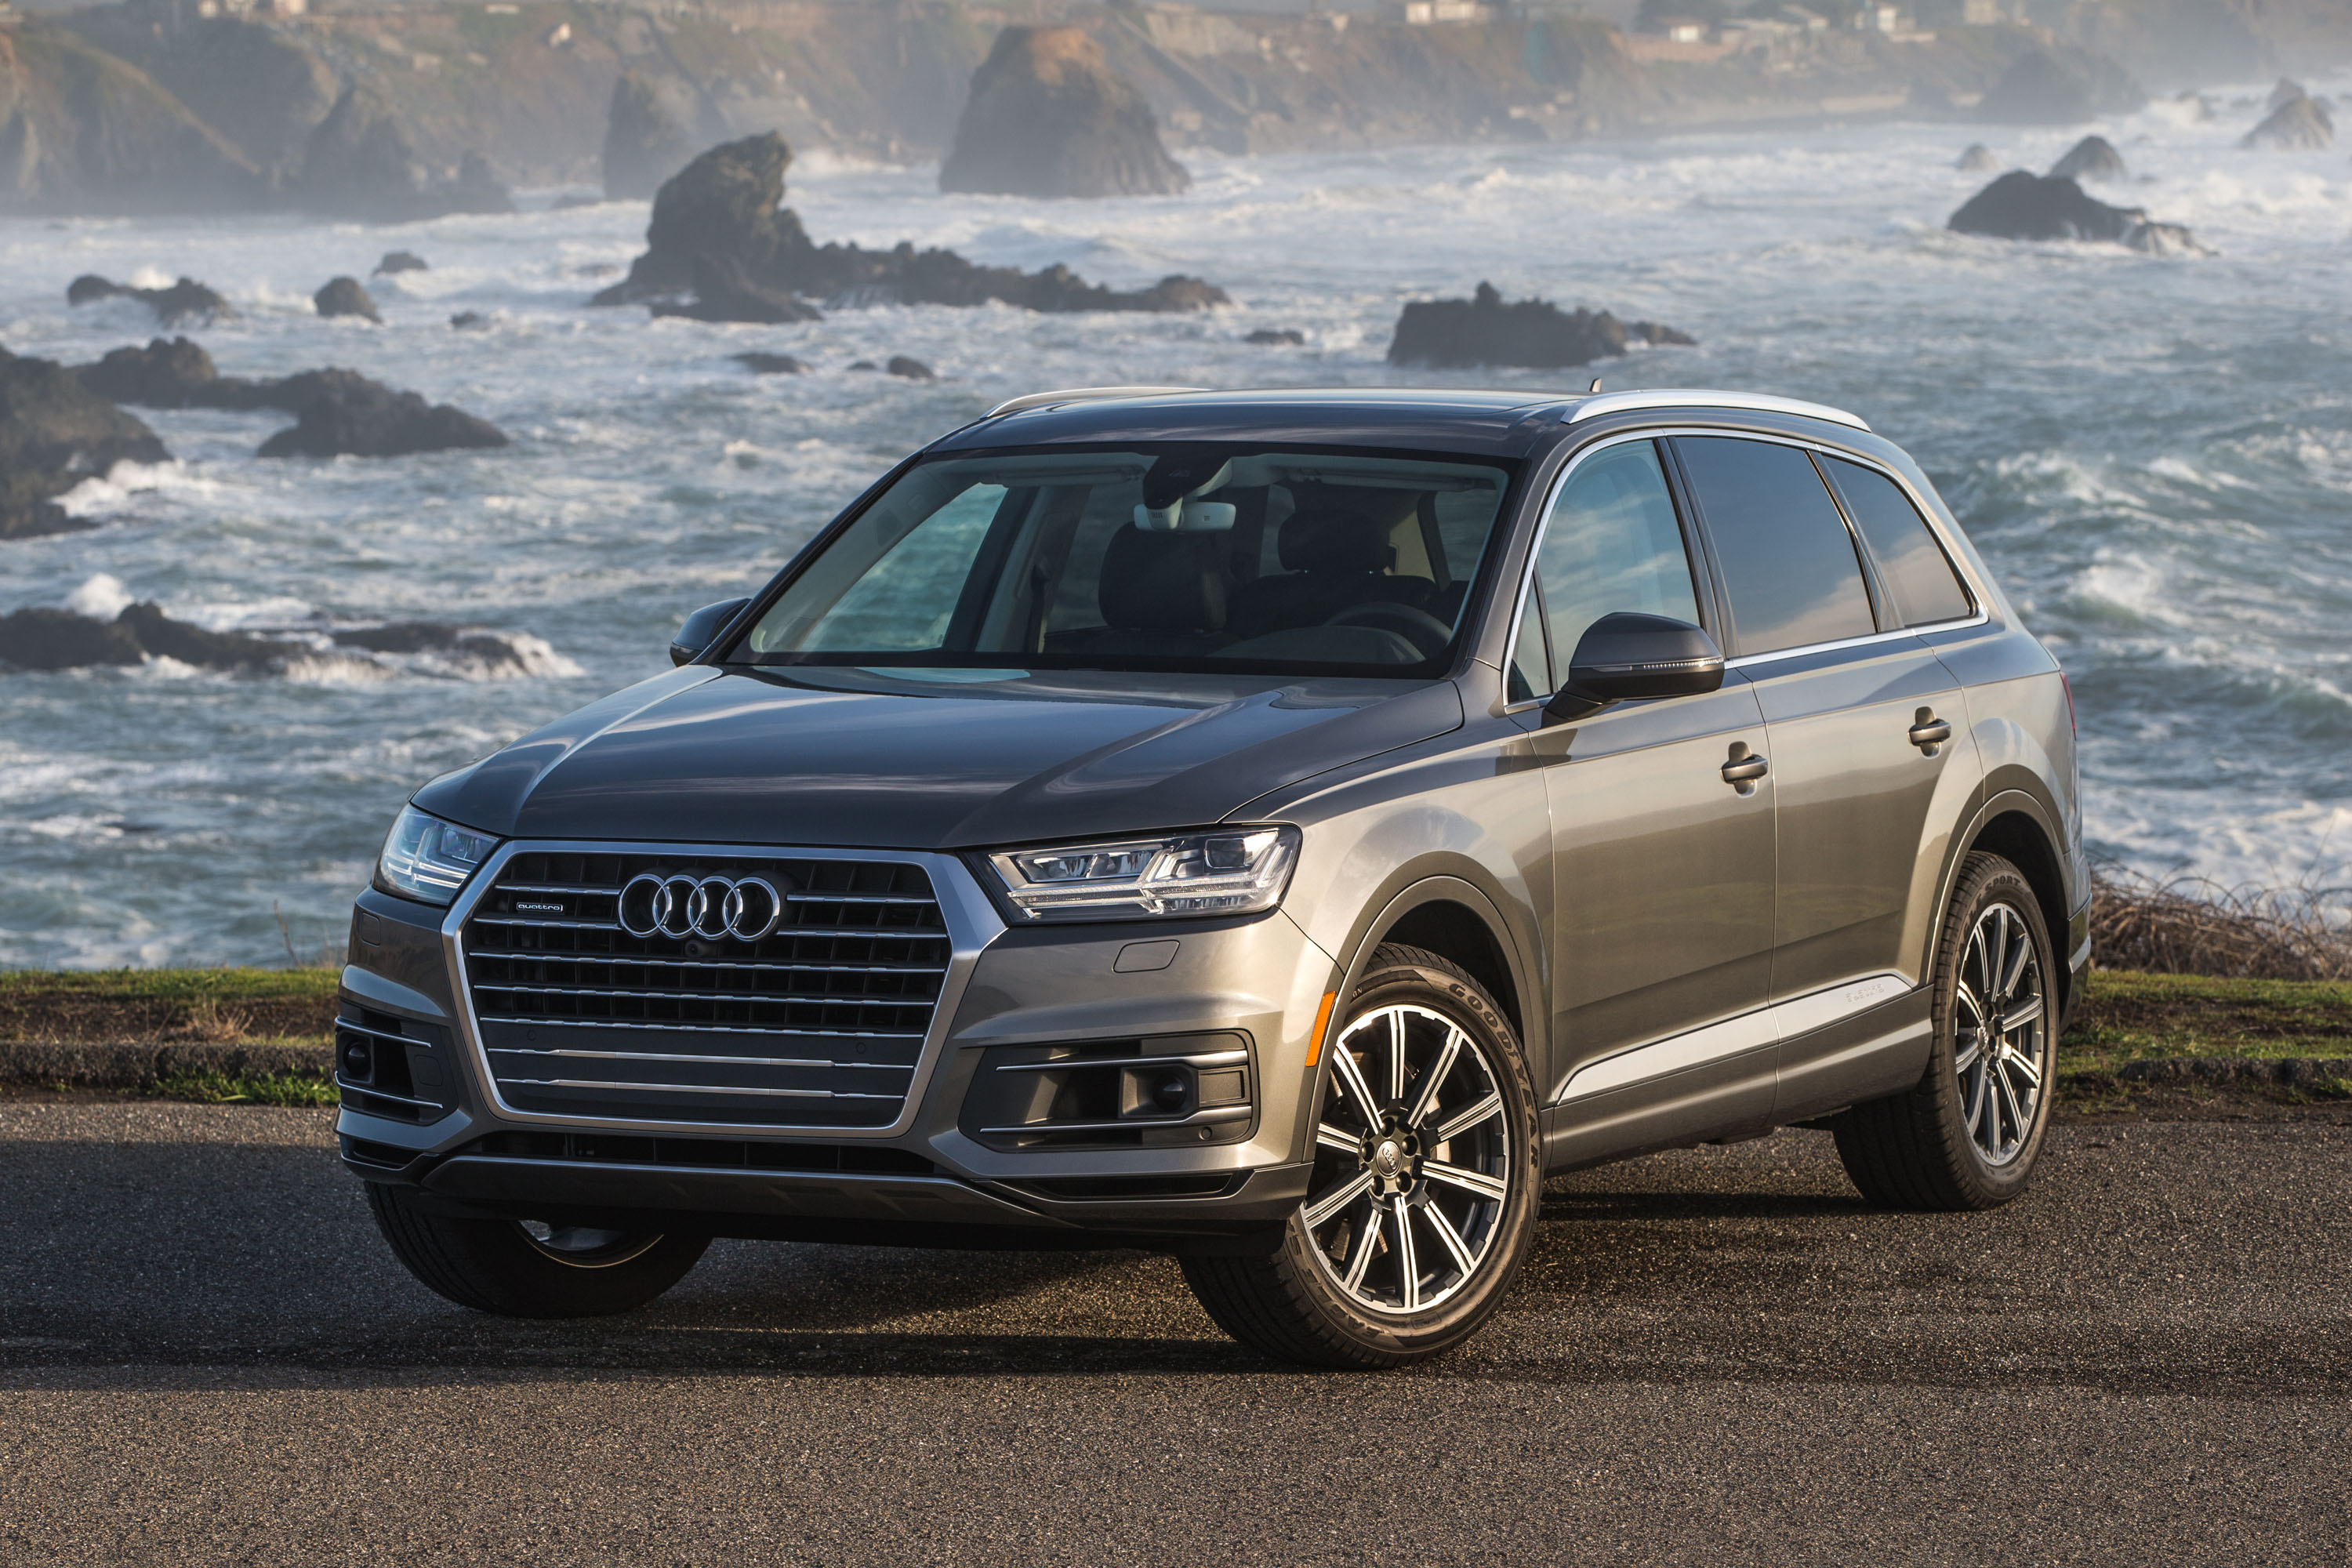 Used Cars Boston >> 2018 Audi Q7 Premium Plus First Drive Review